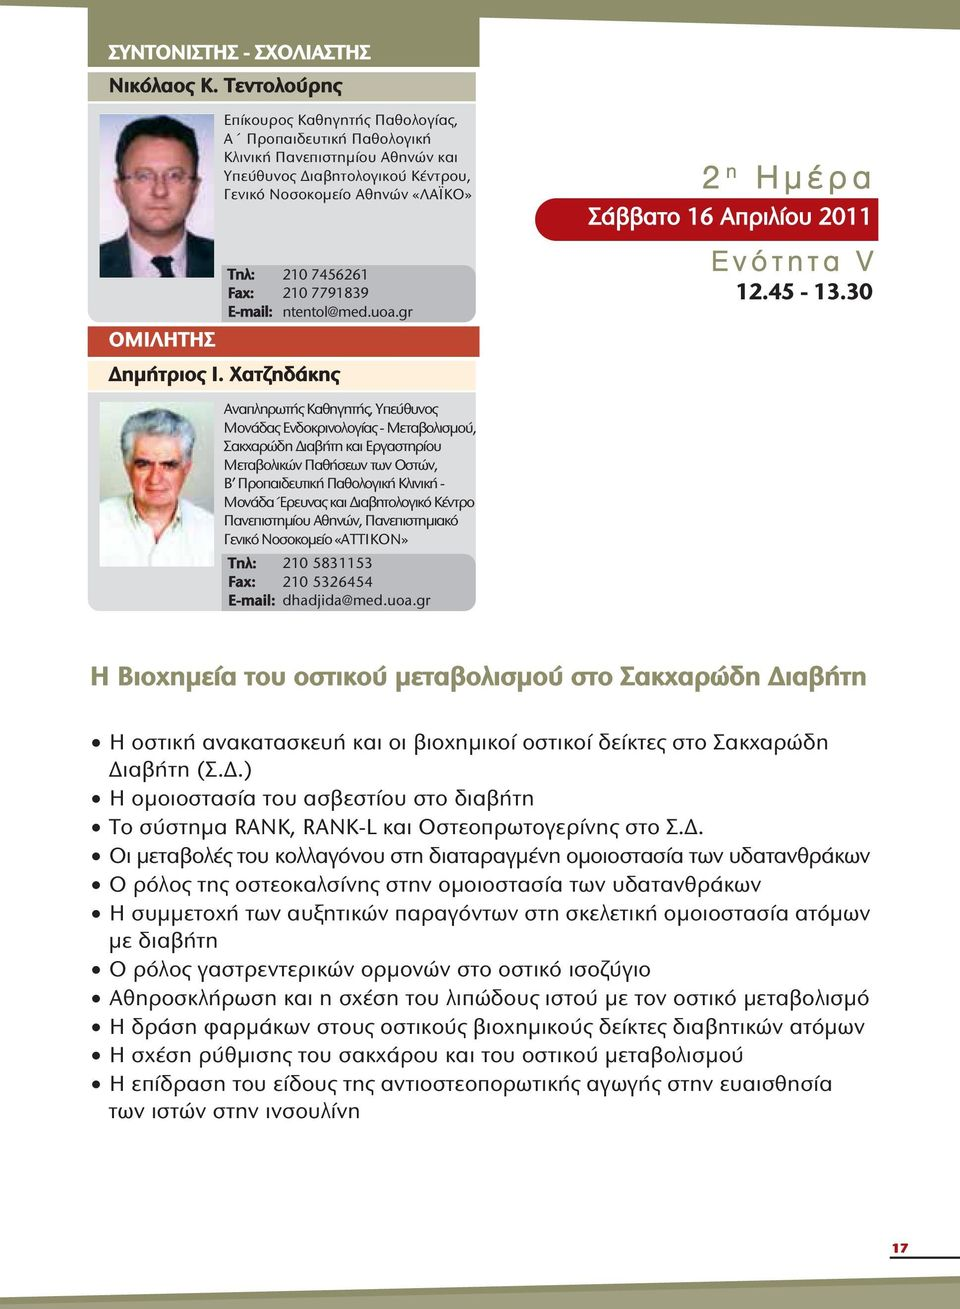 Fax: 210 7791839 E-mail: ntentol@med.uoa.gr 2 η Ημέρα Σάββατο 16 Απριλίου 2011 Ενό τ η τ α V 12.45-13.30 Δημήτριος Ι.